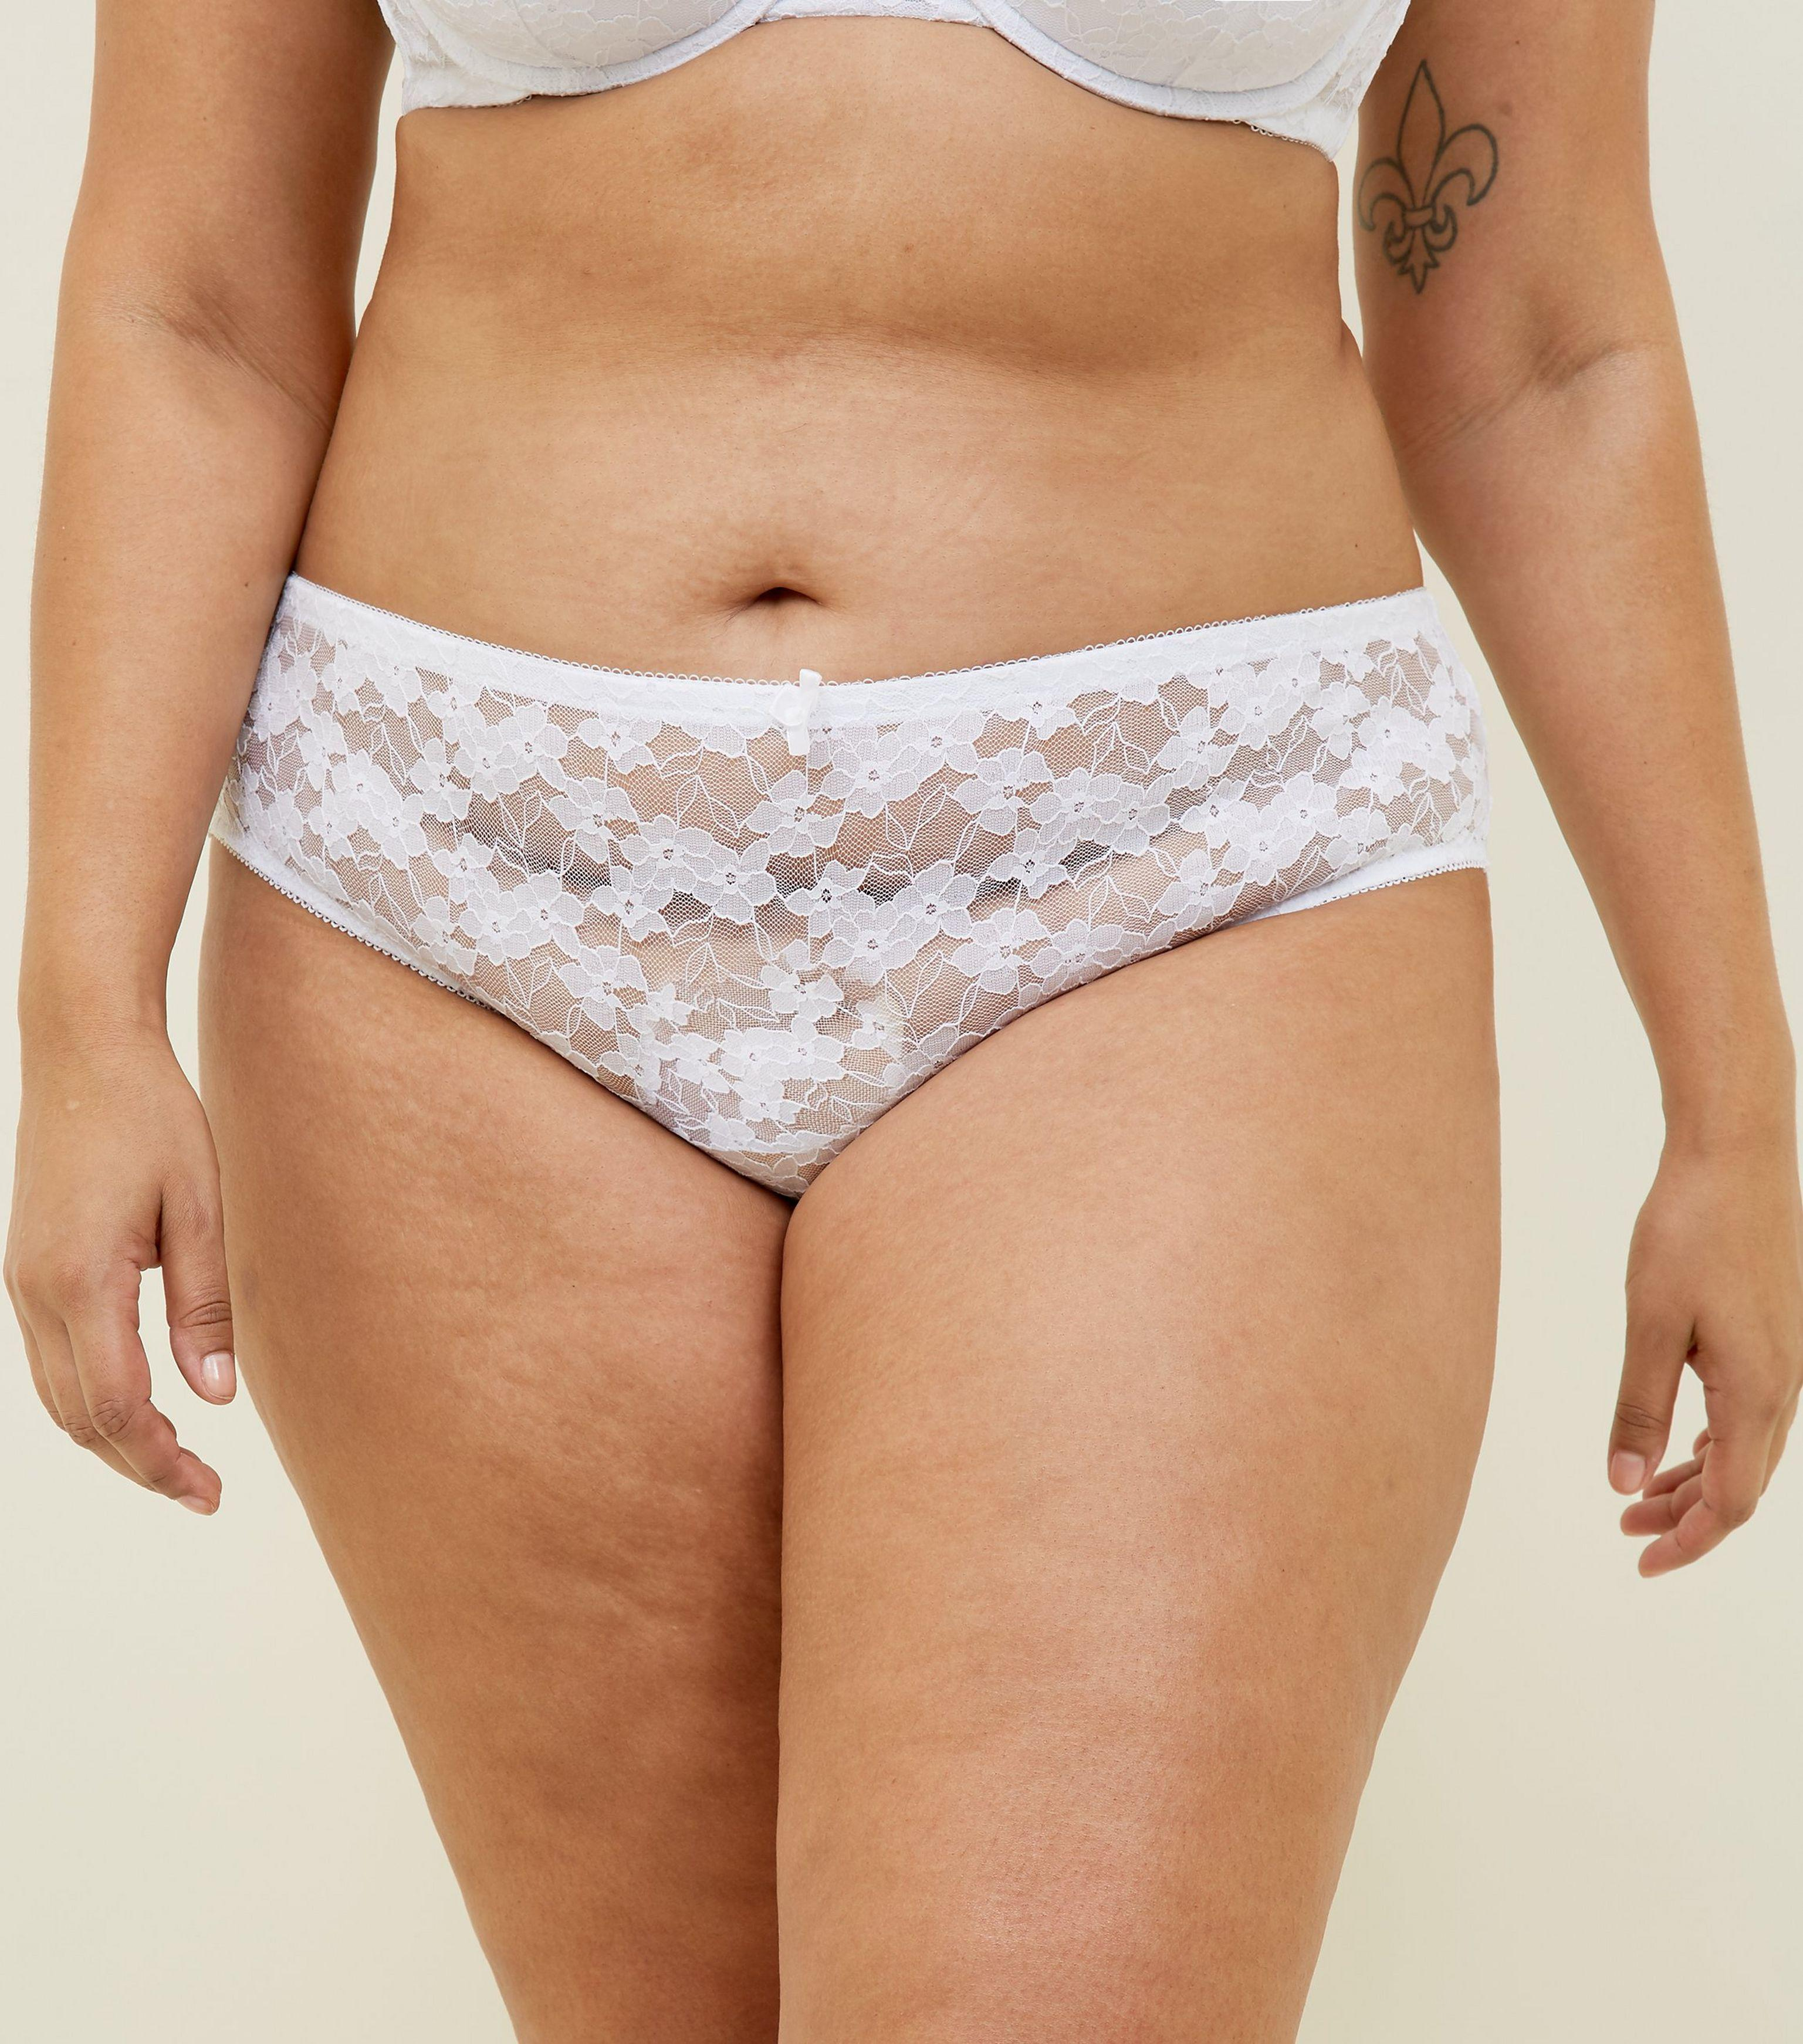 dc0280ddc75 New Look Curves White Lace Brazilian Briefs in White - Lyst